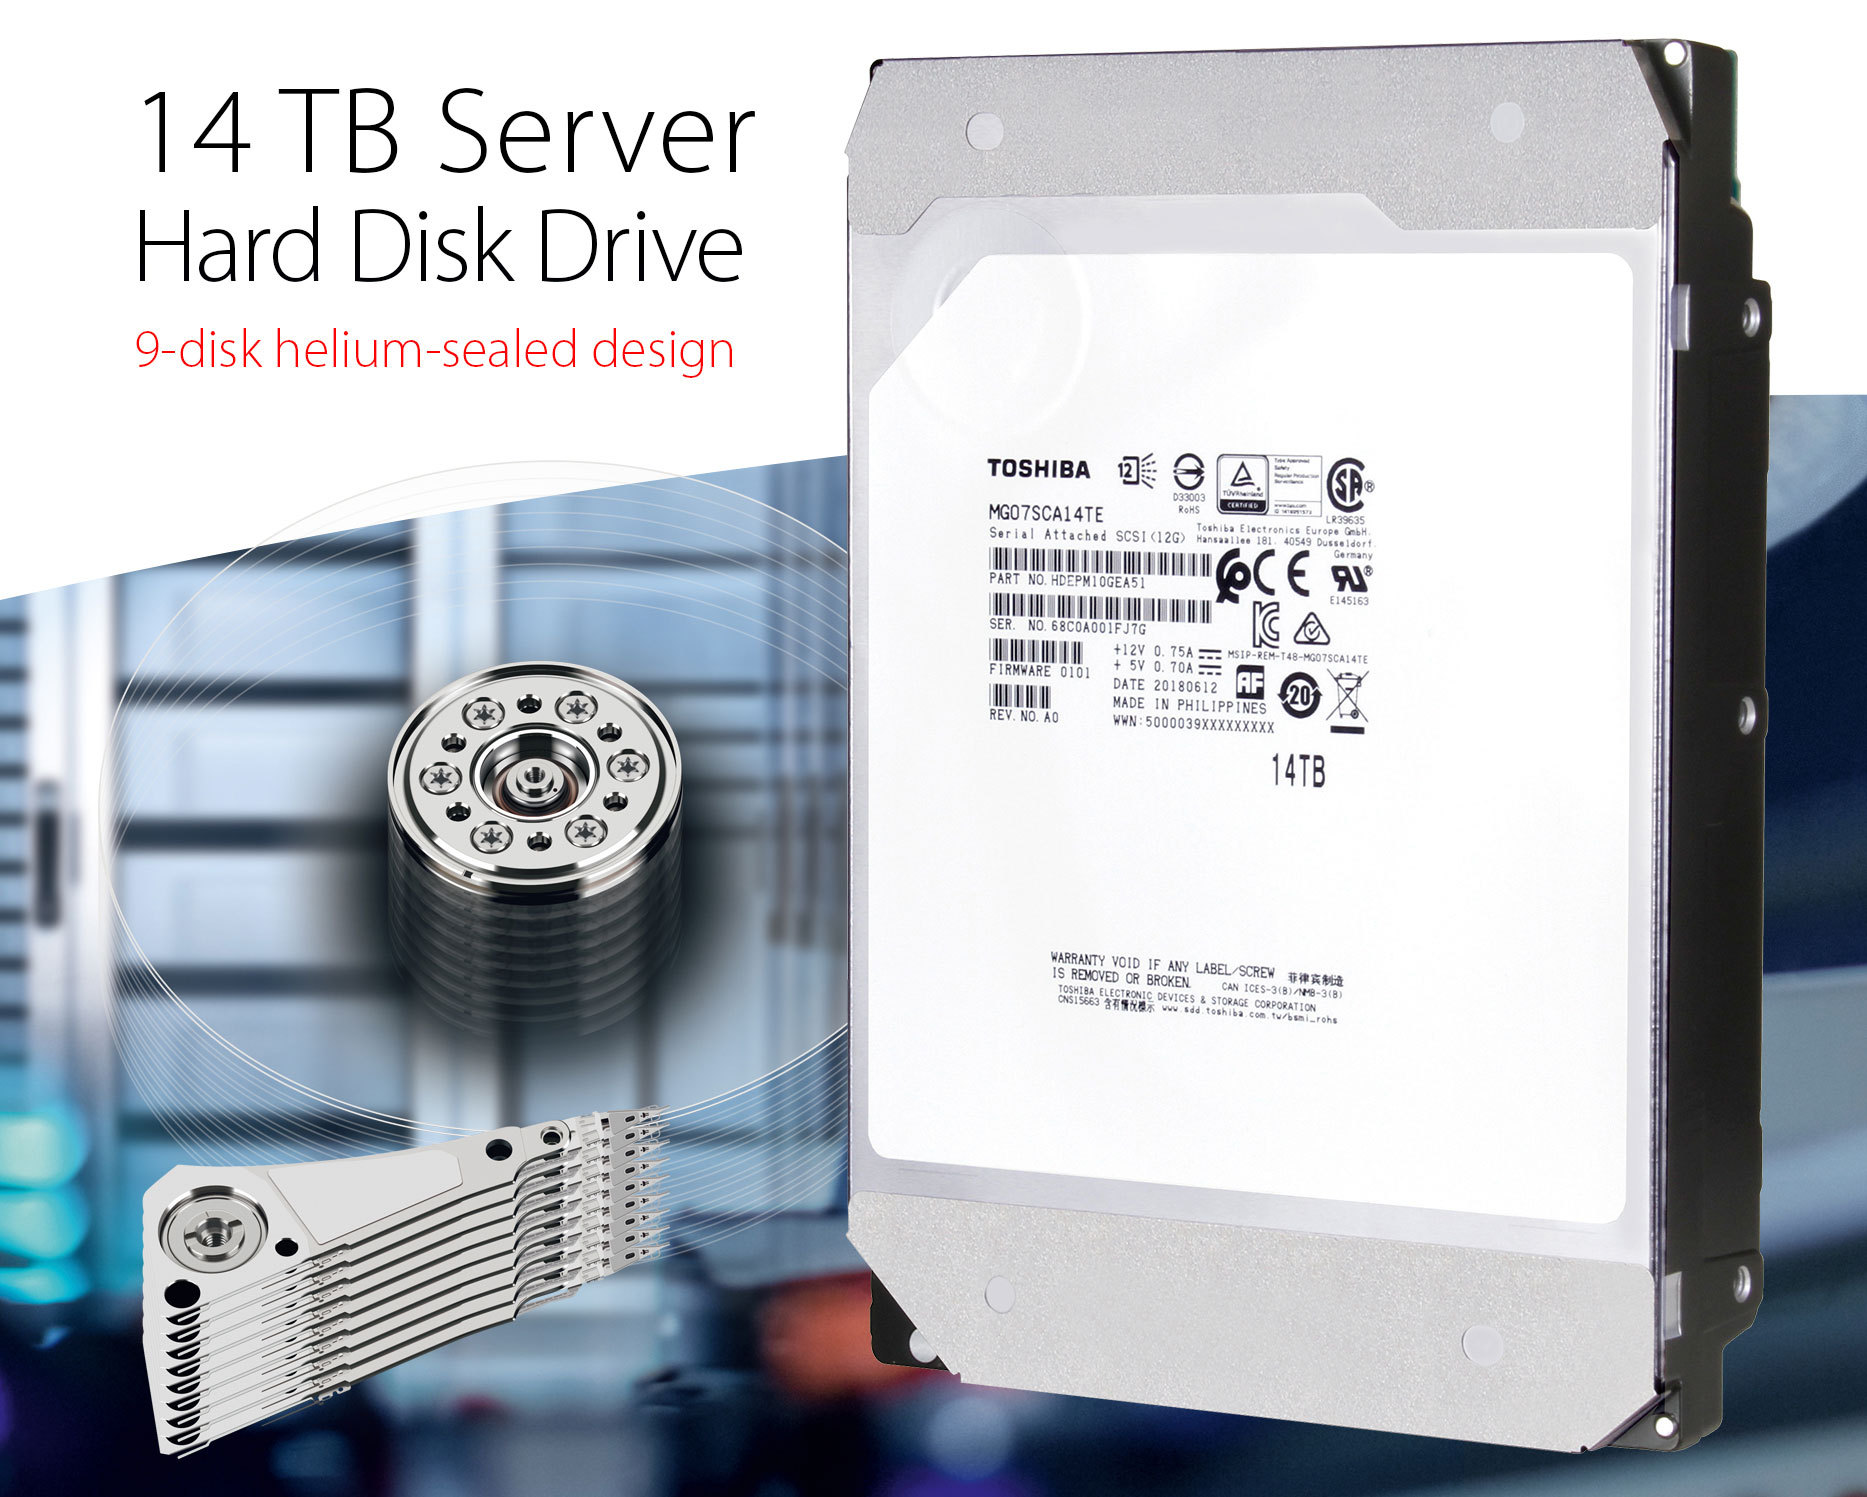 Made In Design Sas.Toshiba Gives More Capacity To Sas Hdd Models Business Wire